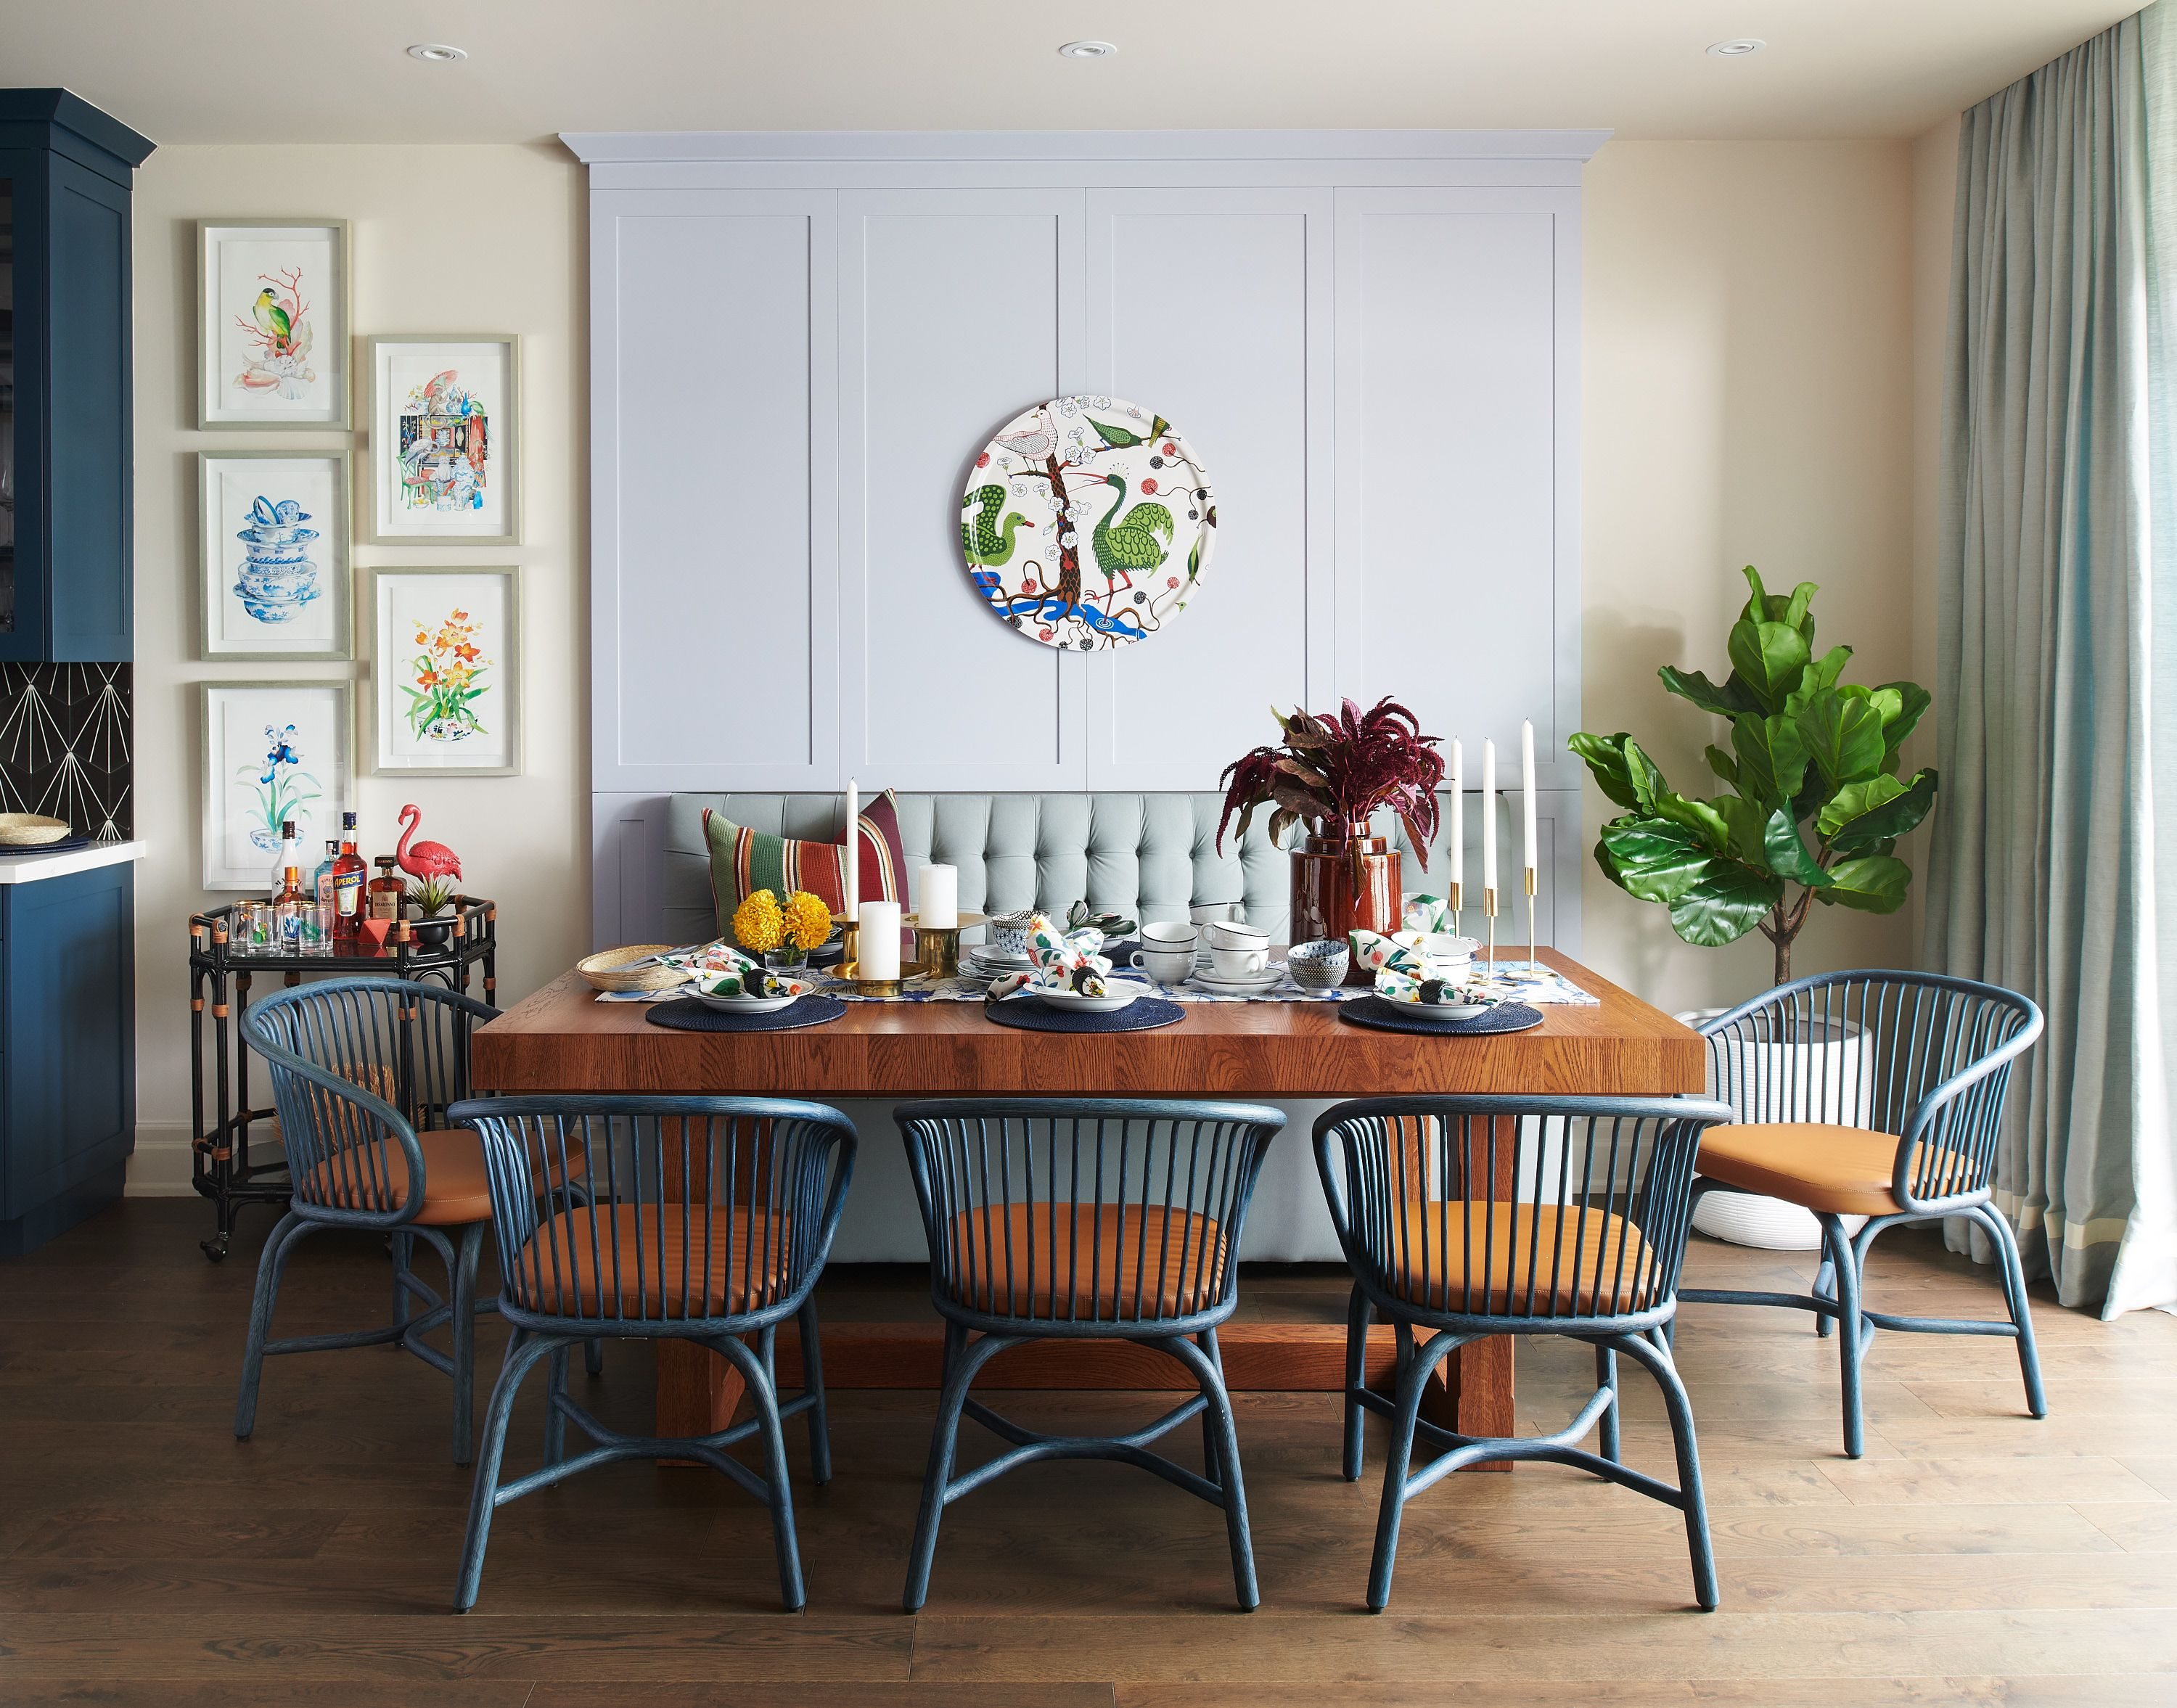 Jonathan Adler 2019 Home Decor Trends